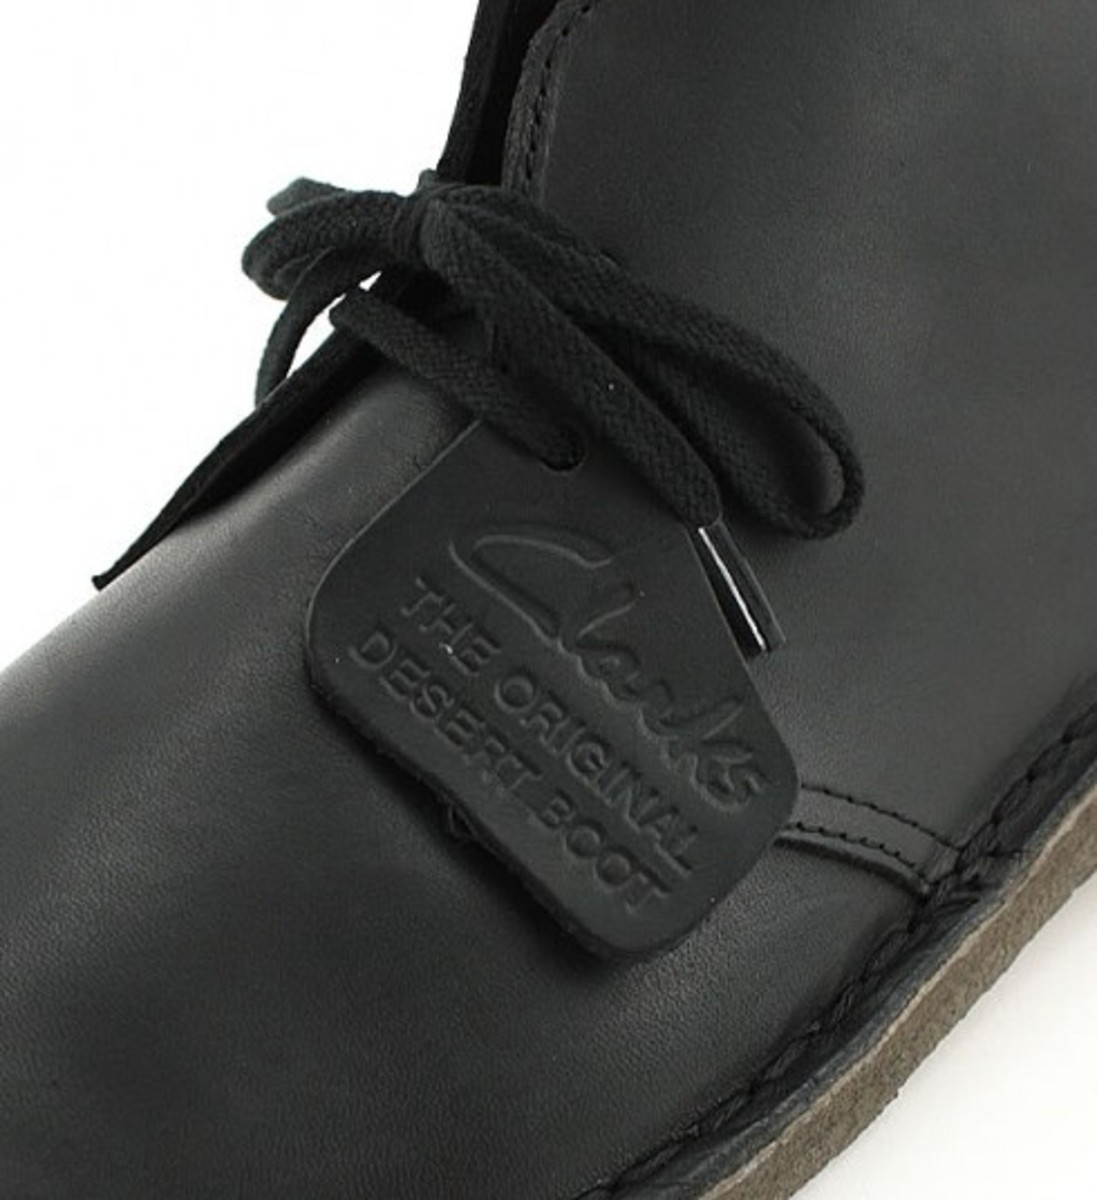 SHIPS x Clarks - Desert Boots Ebony Leather Limited Edition